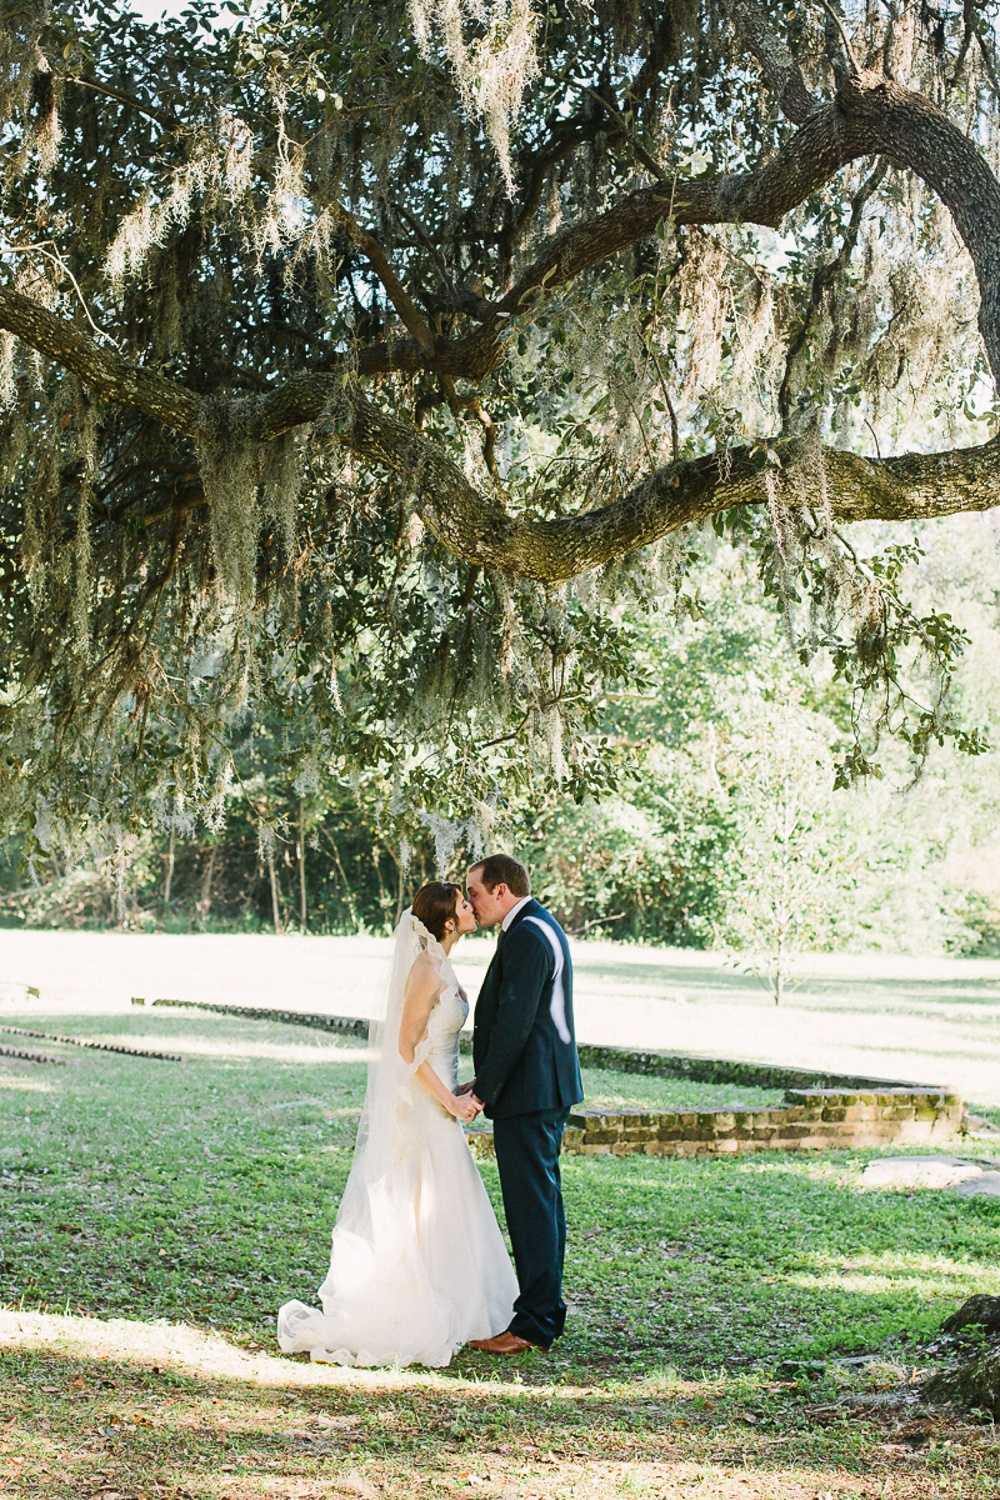 Lindsey_A_Miller_photography_charleston_mcleod_plantation_wedding_row_of_oaks_southern_classic_fall_spanish_moss_historic_home_038.jpg